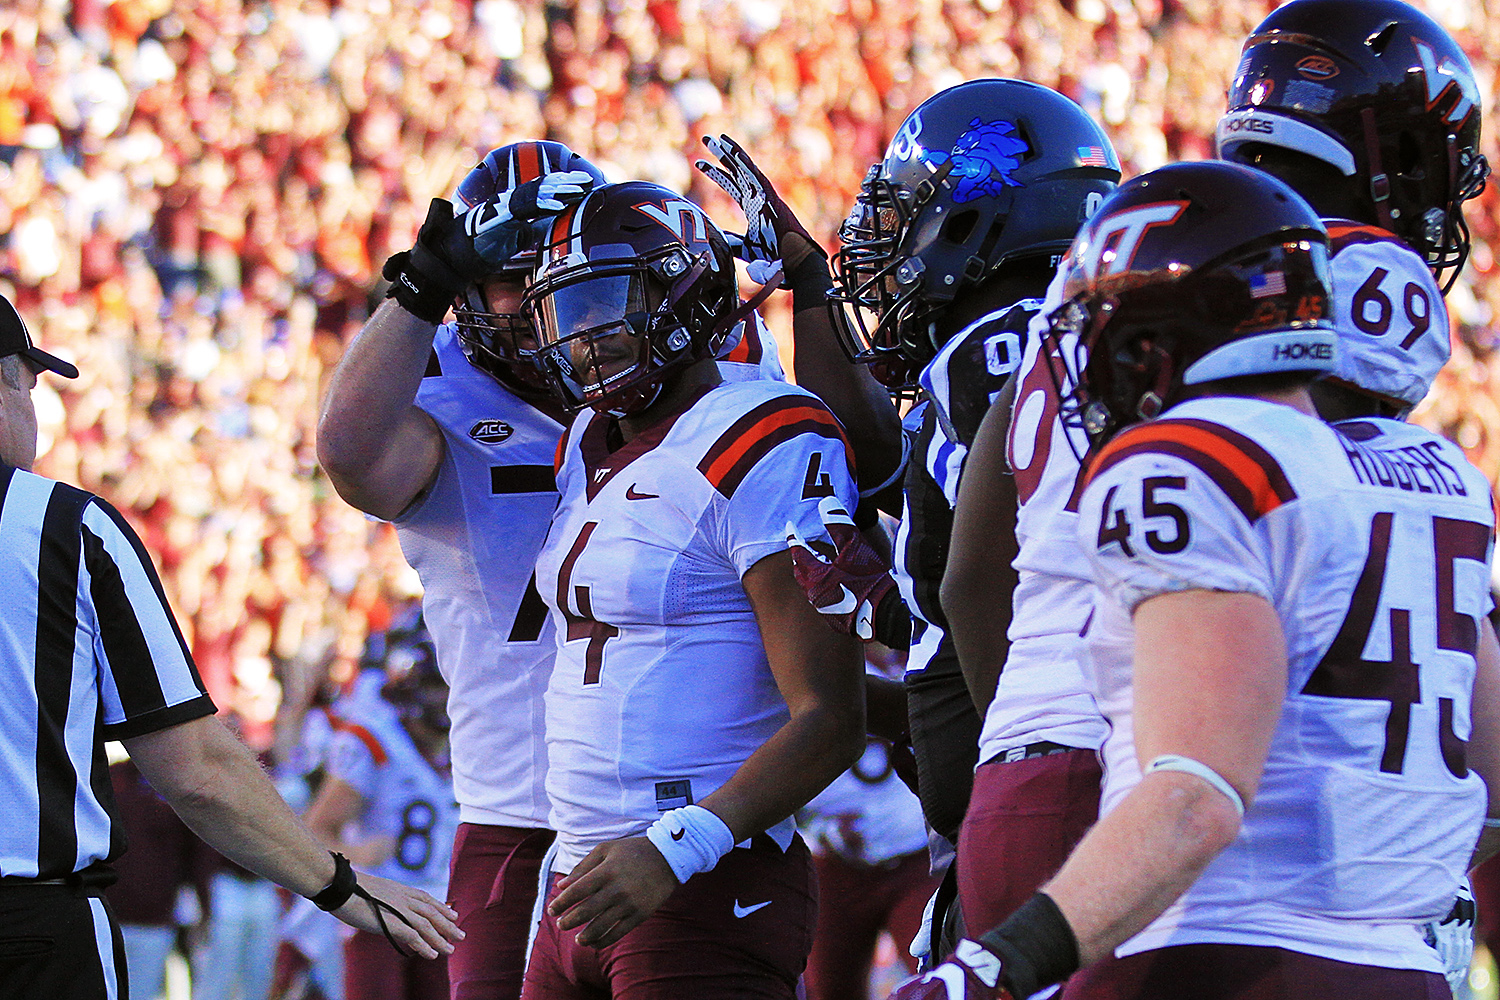 2016.11.05. No. 23 Virginia Tech (Hokies) at Duke University (Blue Devils). Wallace Wade Stadium, Durham, NC. Final score: Virginia Tech 24, Duke 21.